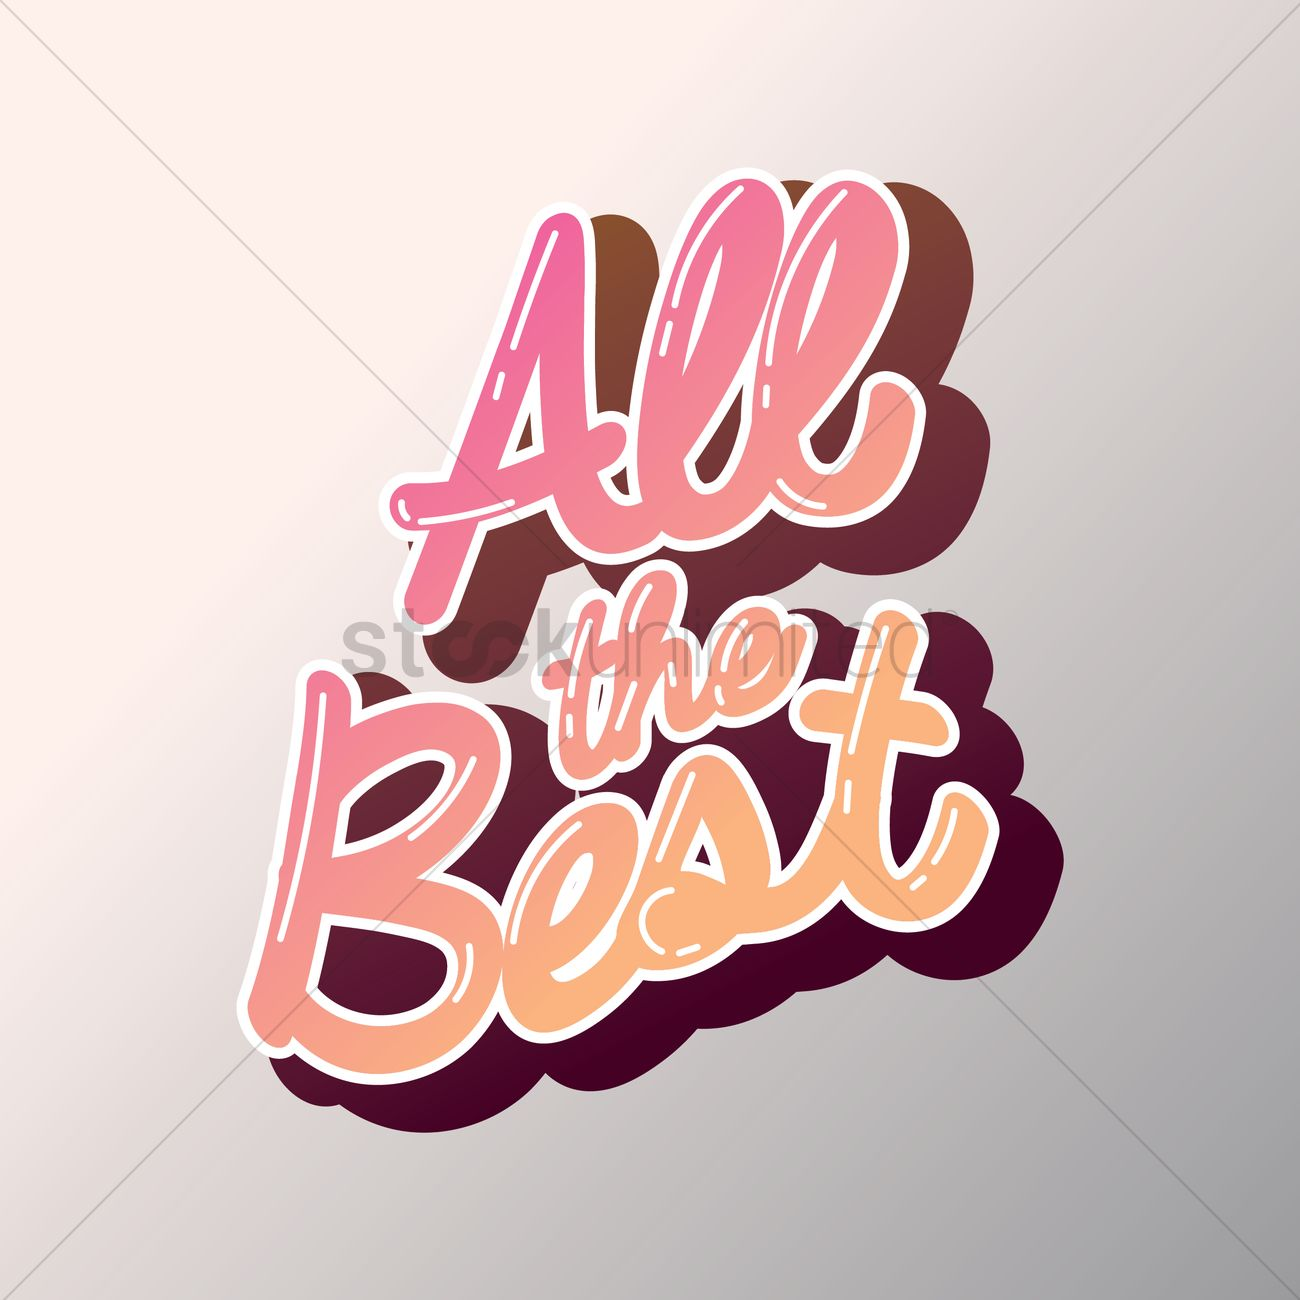 All the best greeting vector image 1811277 stockunlimited all the best greeting vector graphic kristyandbryce Image collections